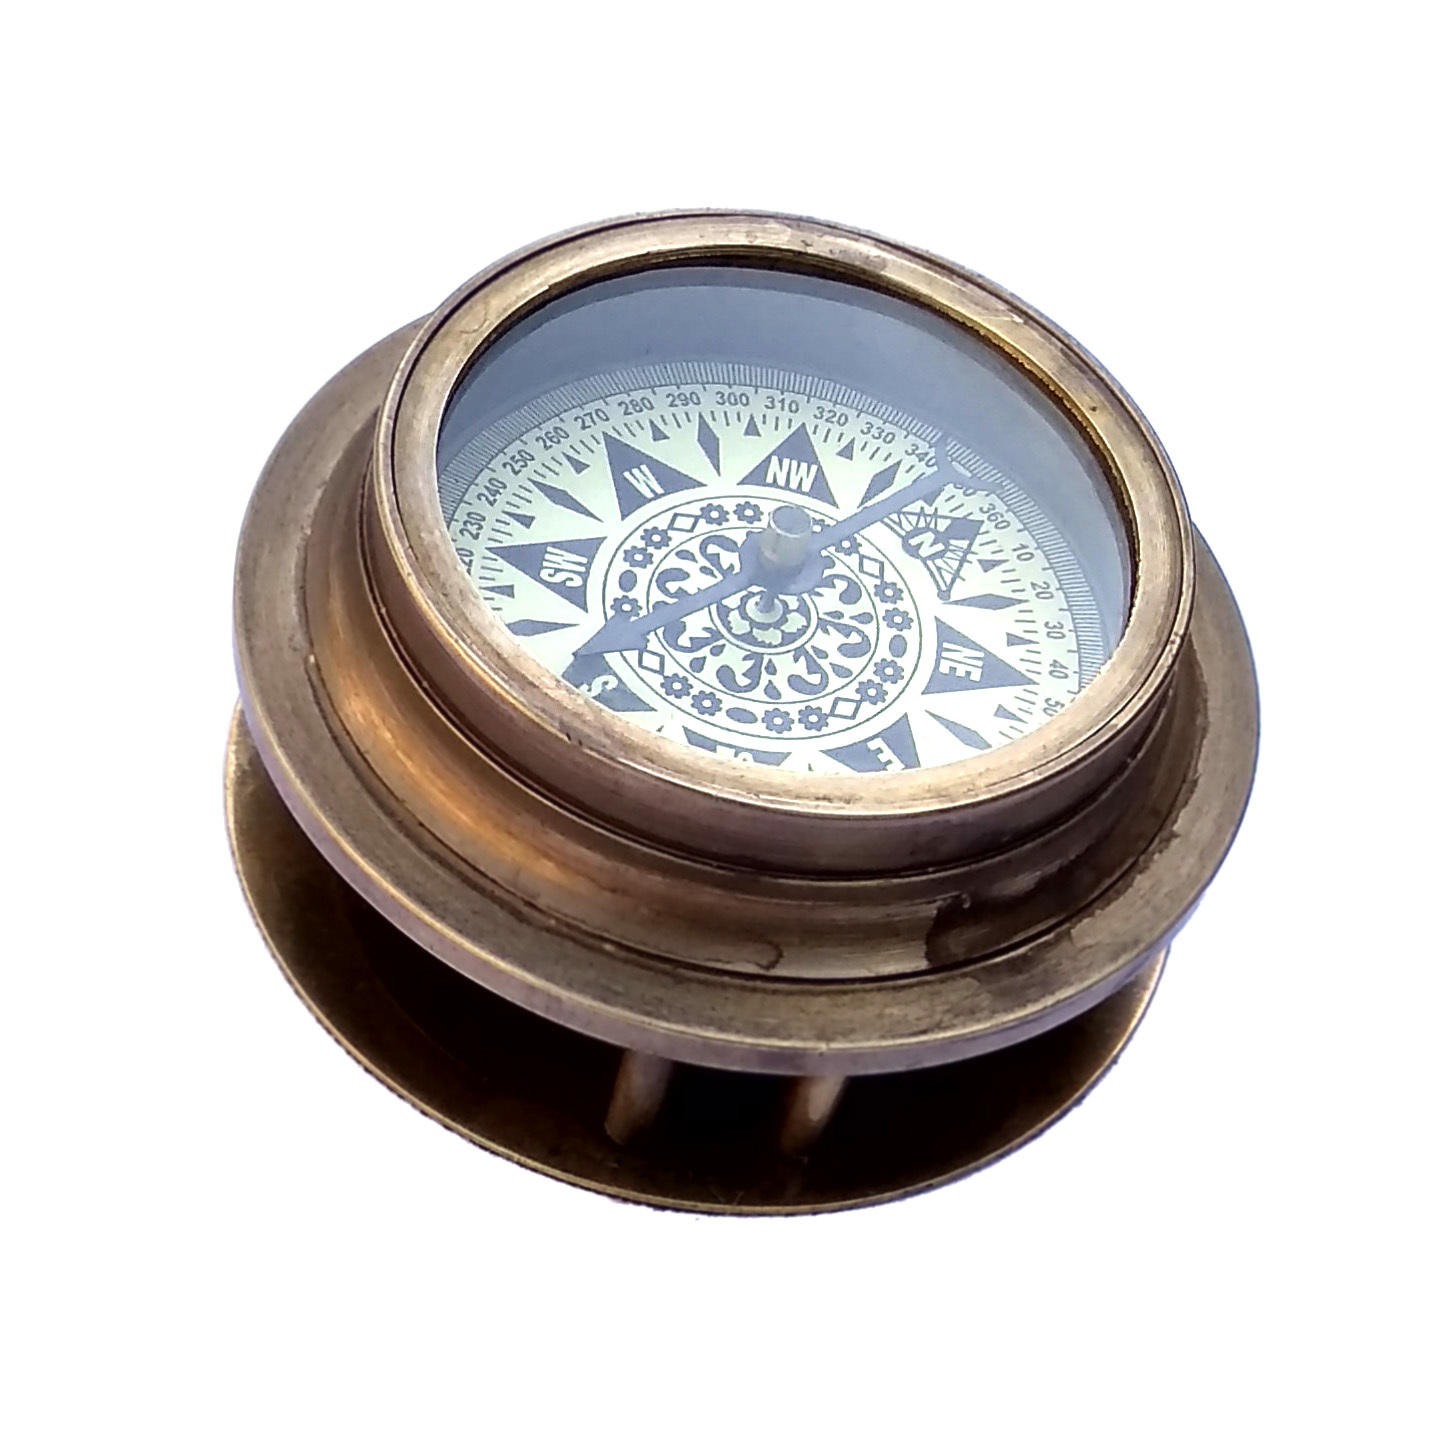 Brass magnifying compass